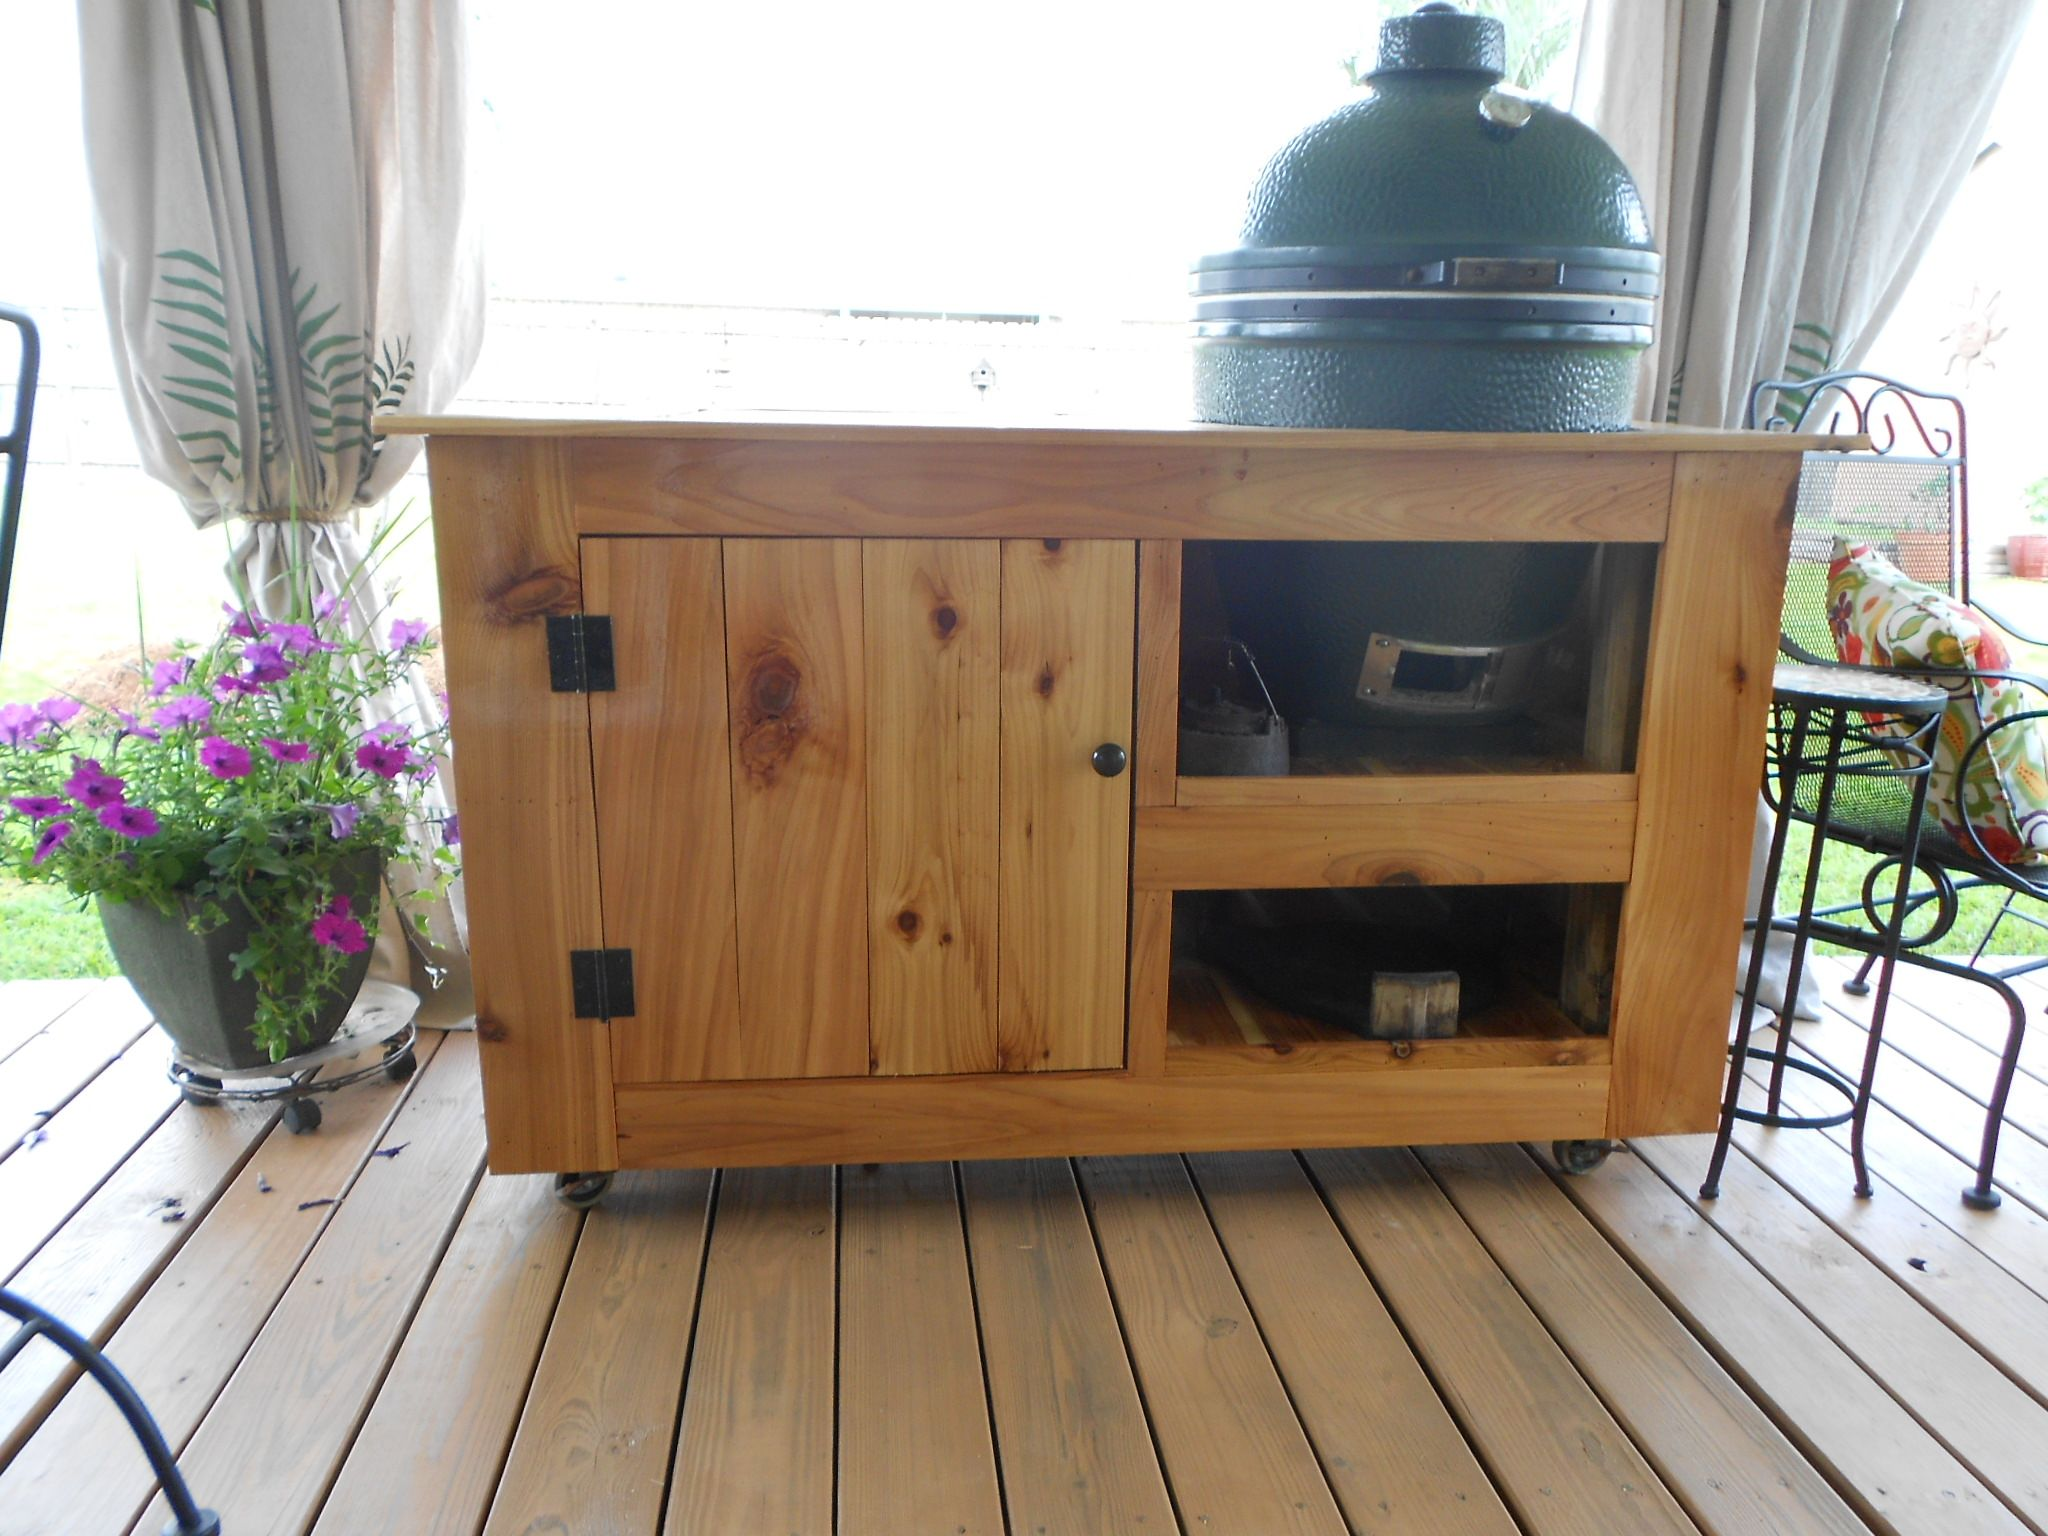 Image detail for  Big Green Egg Table   by Todd Adair   LumberJocks com    woodworking     Outside   Pinterest   Big green egg table  Green eggs and. Image detail for  Big Green Egg Table   by Todd Adair